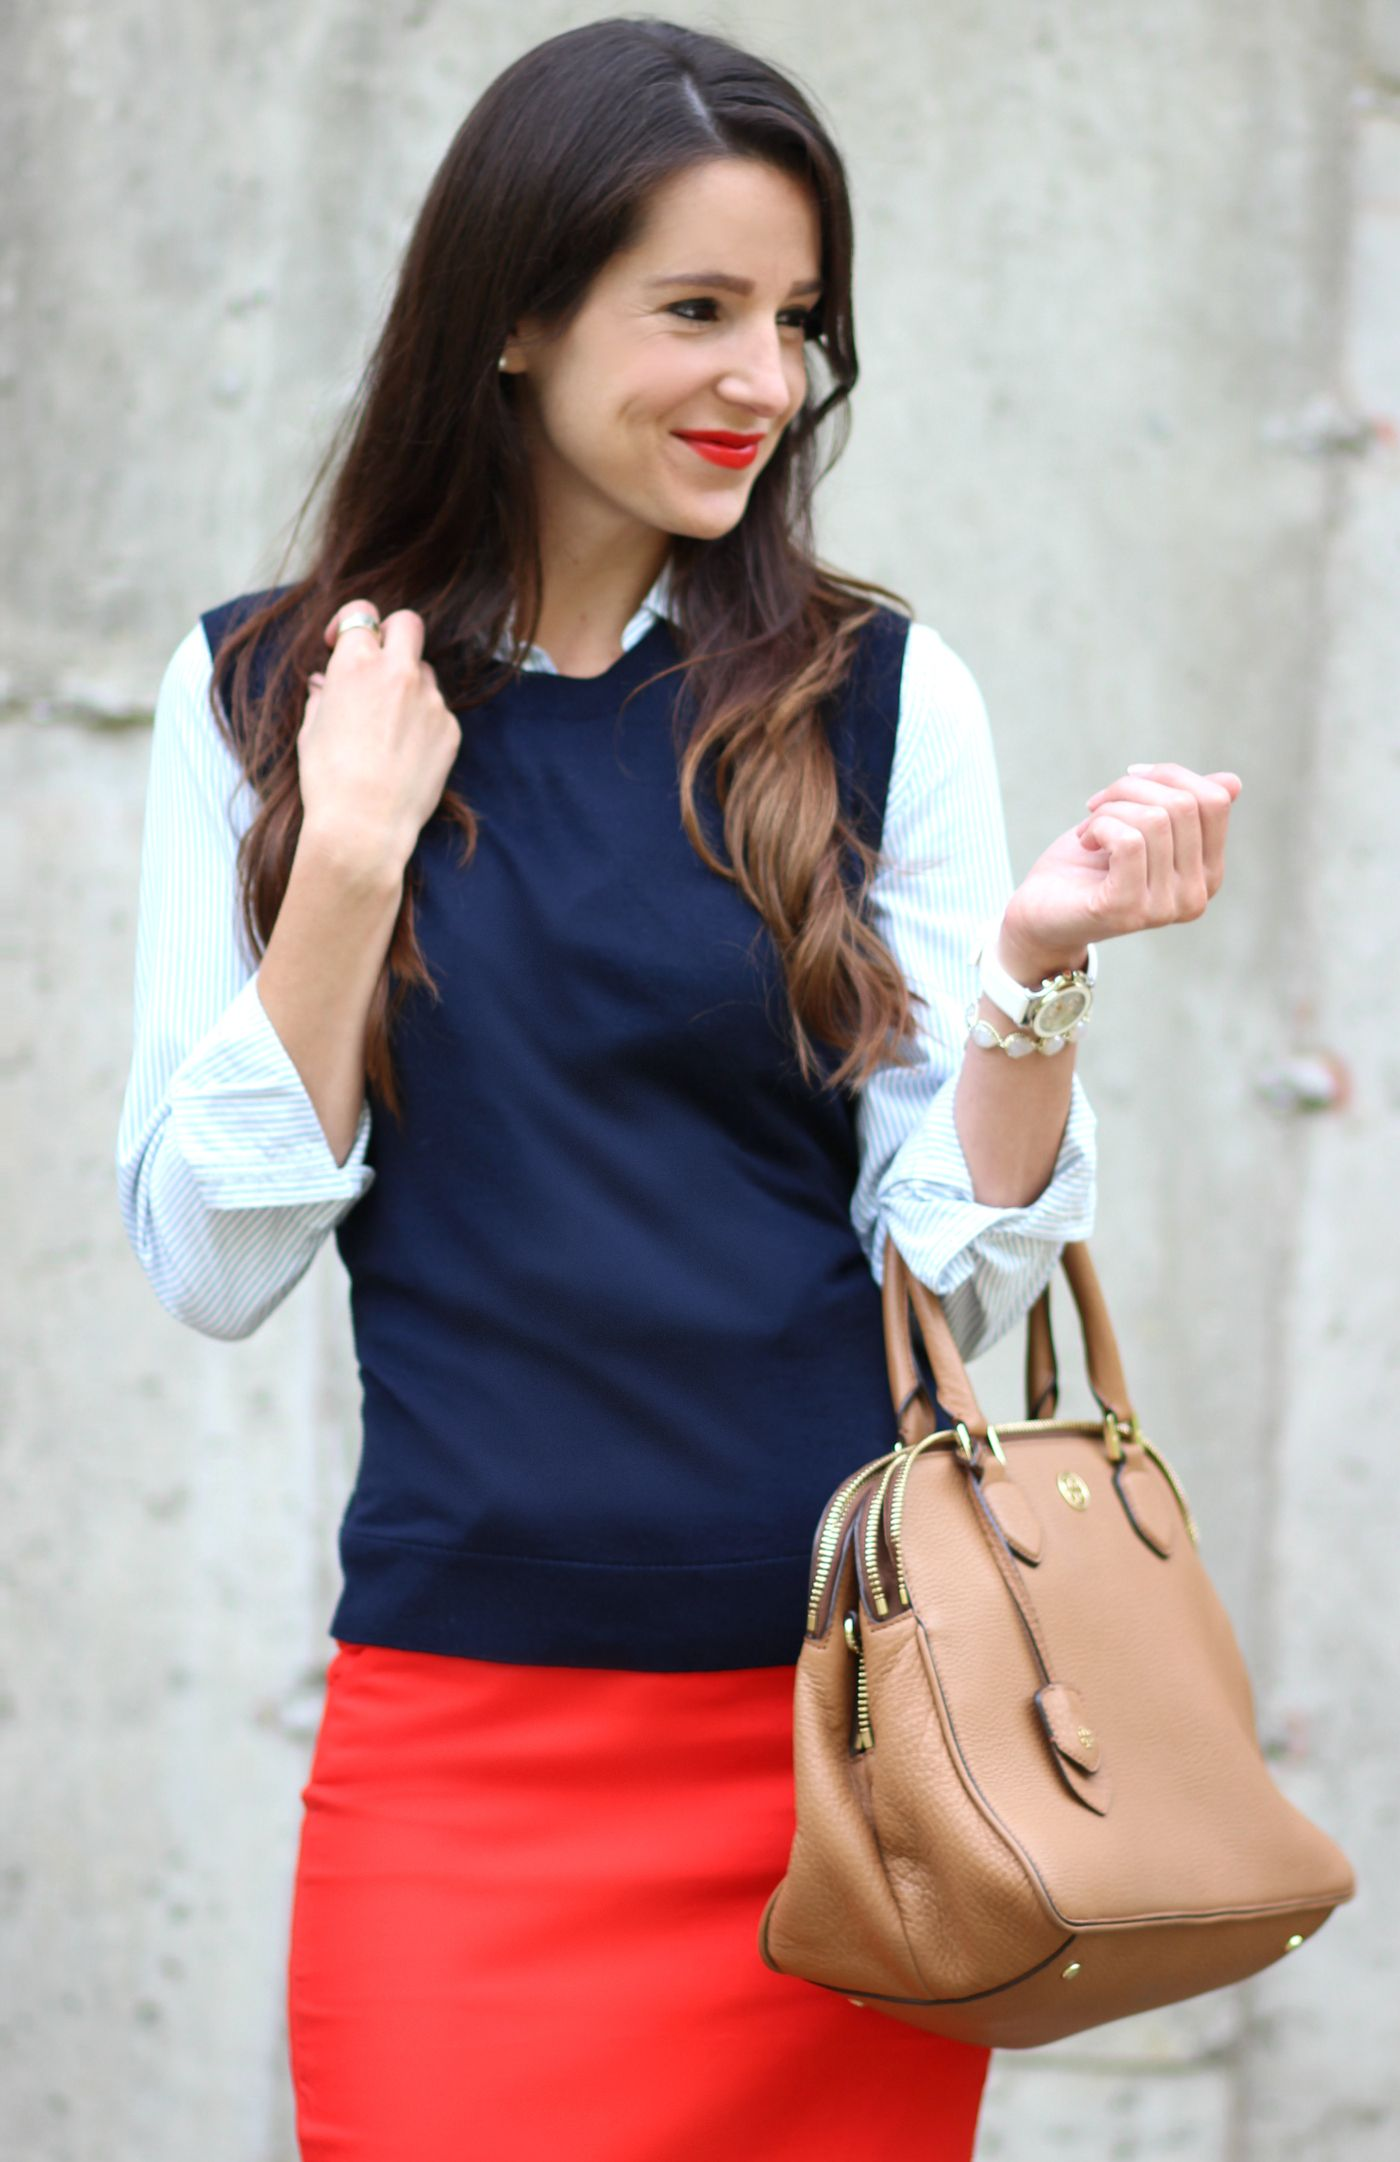 How to Make a Sweater Vest Look Chic | Red pencil, Navy sweaters ...